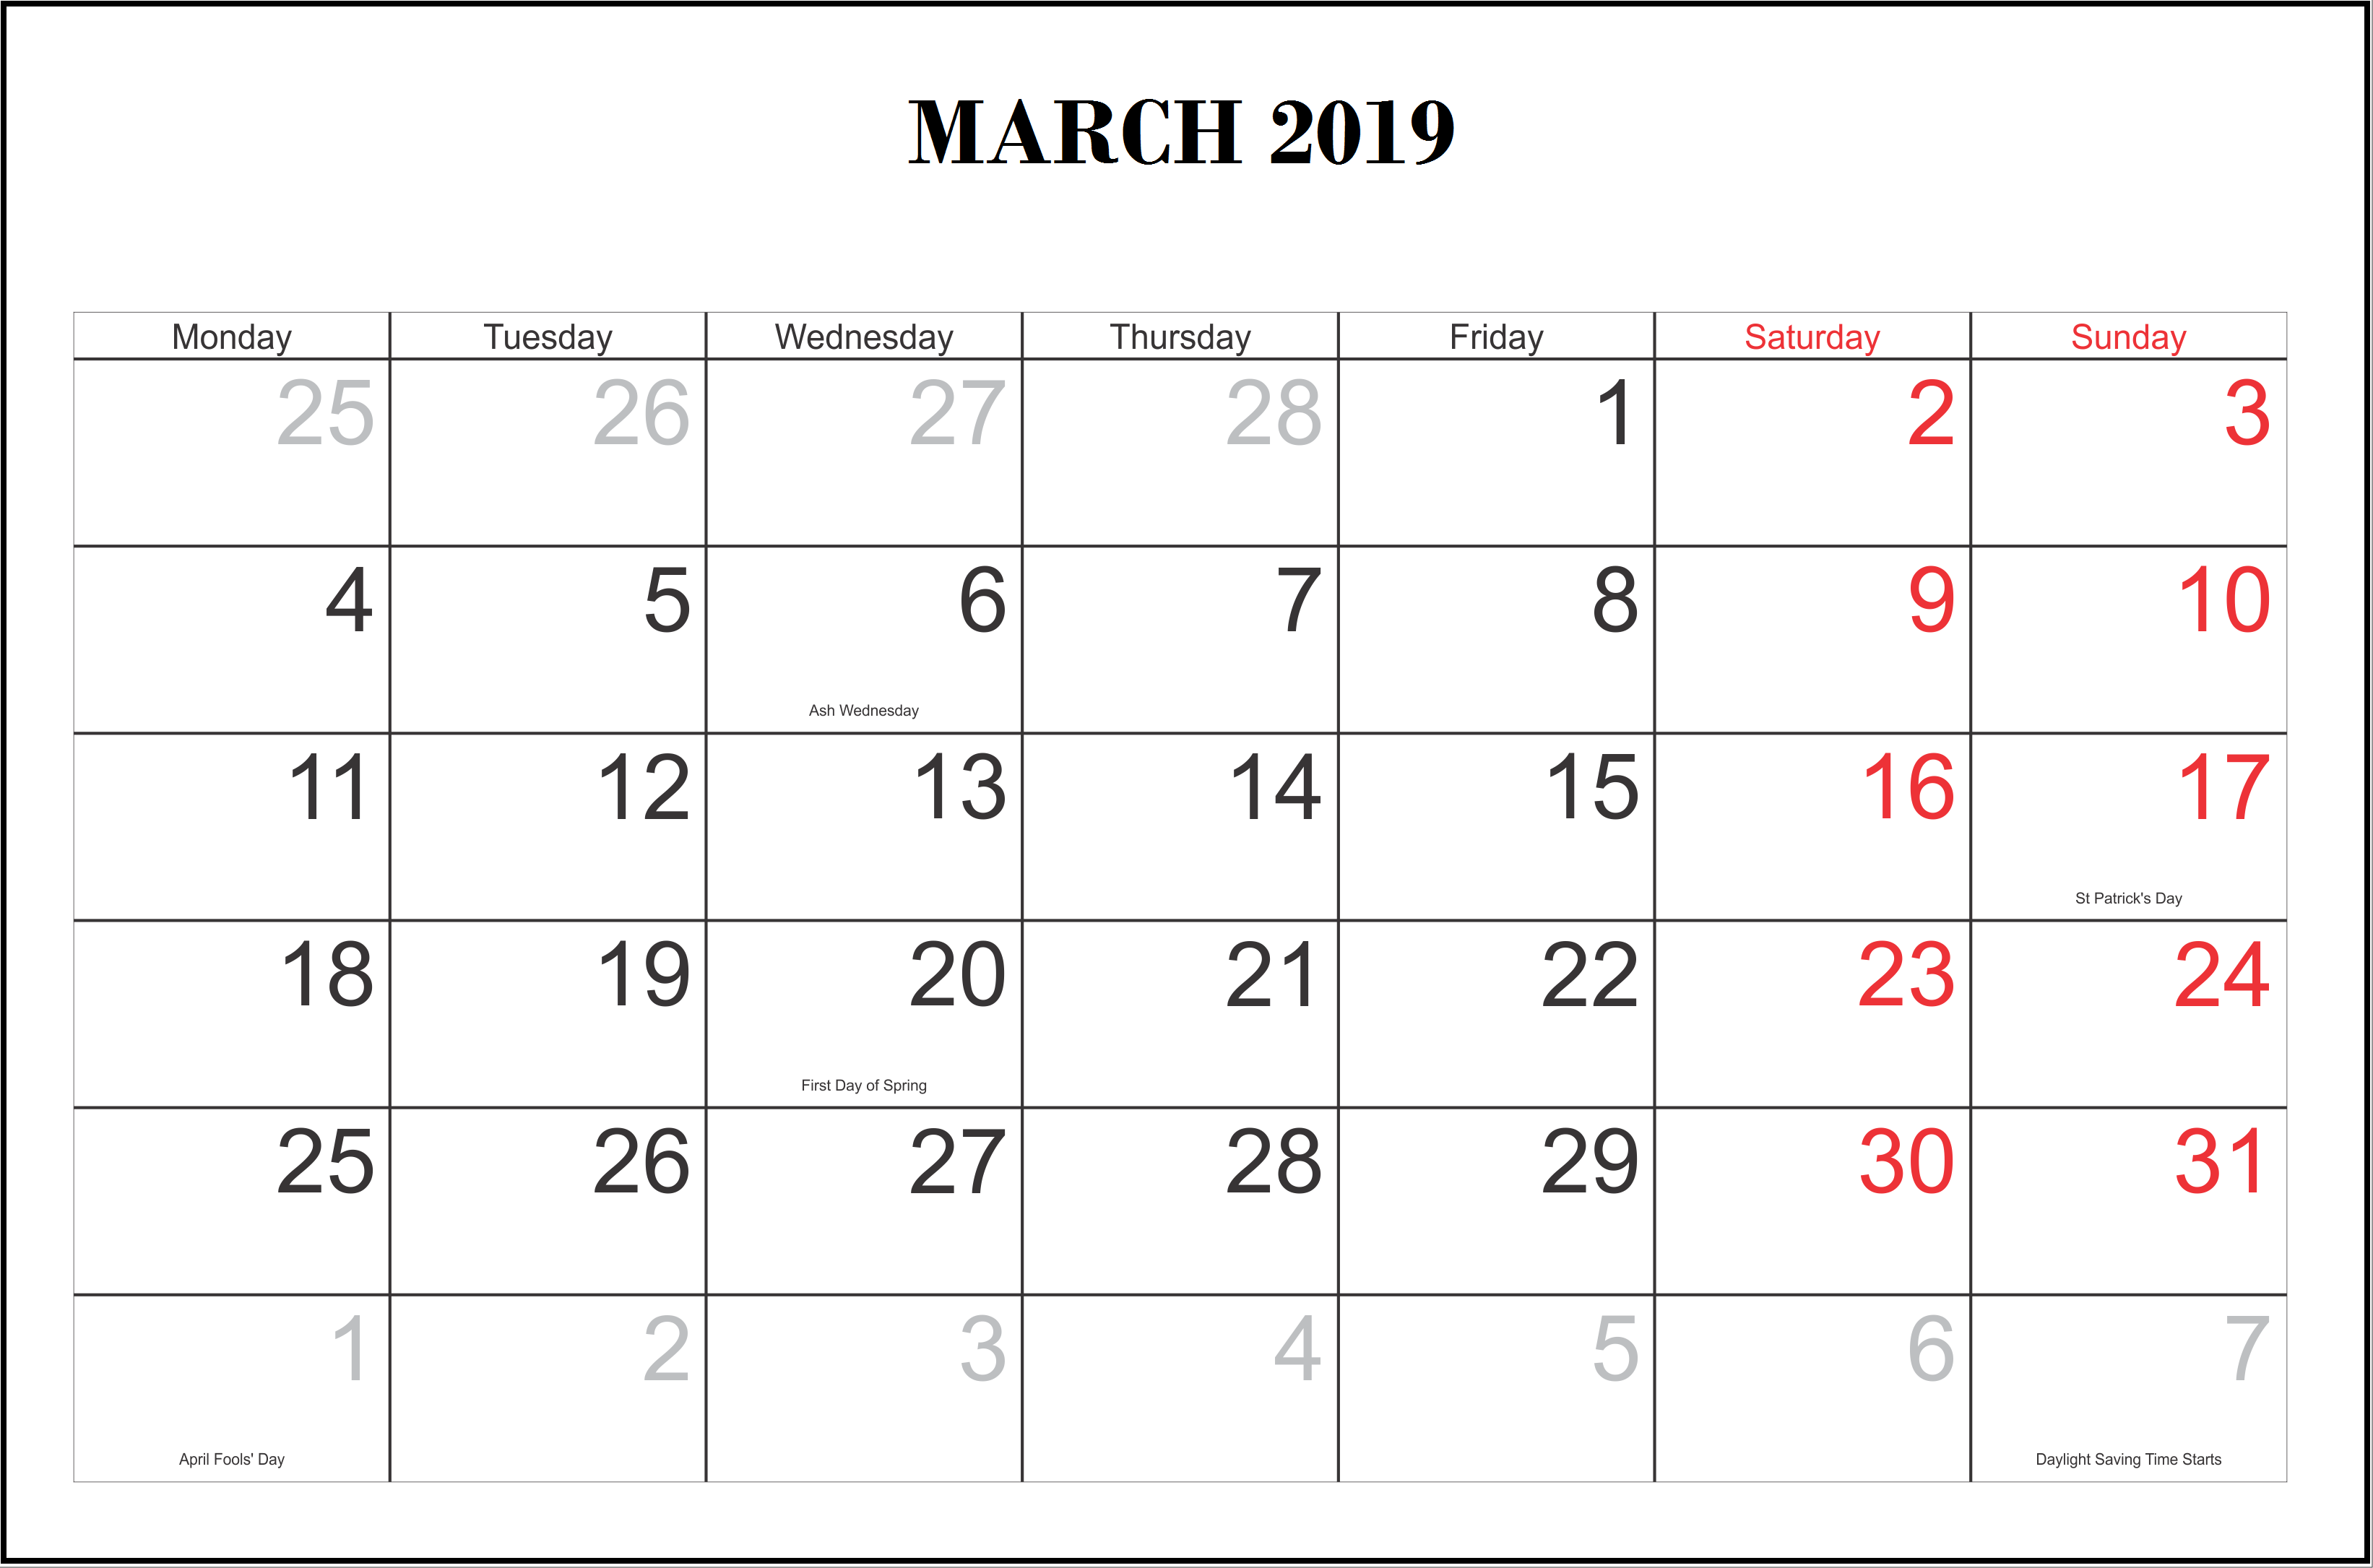 March 2019 Calendar Philippines With Holidays